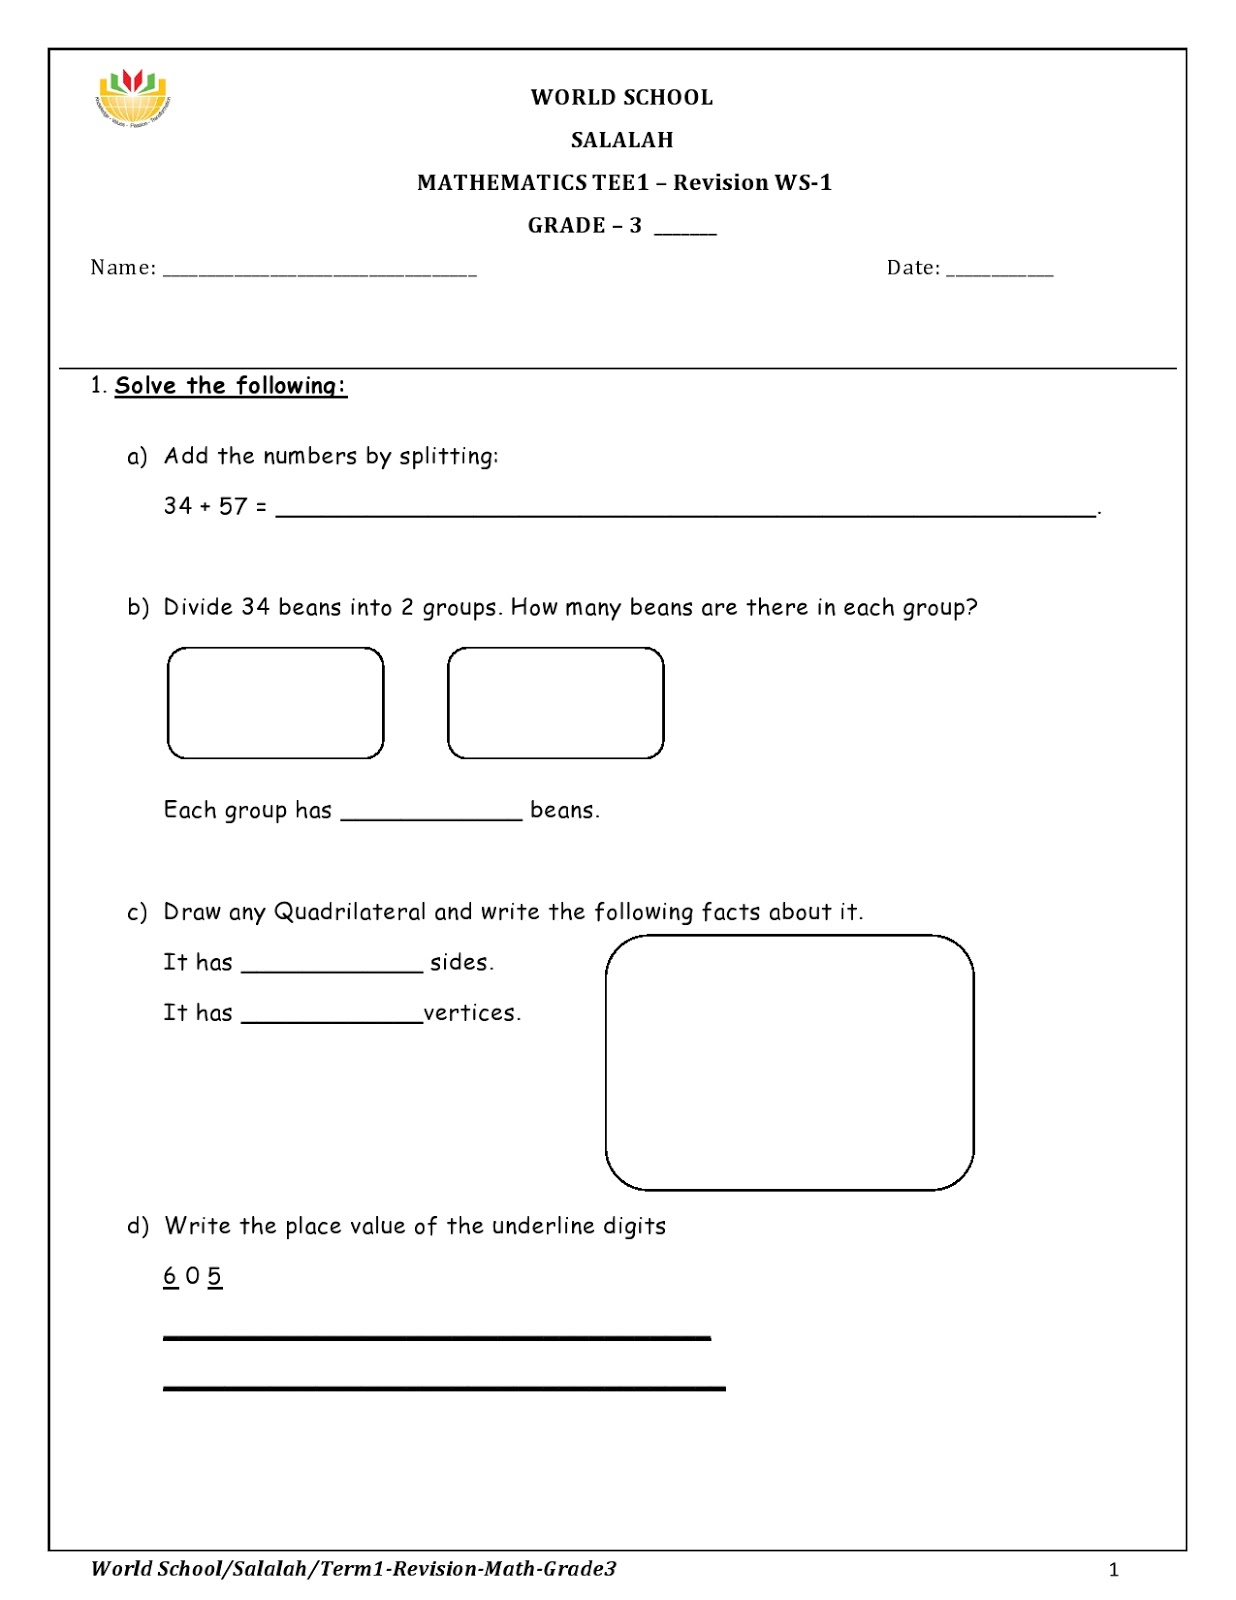 Birla World School Oman Homework For Grade 3 As On 25 12